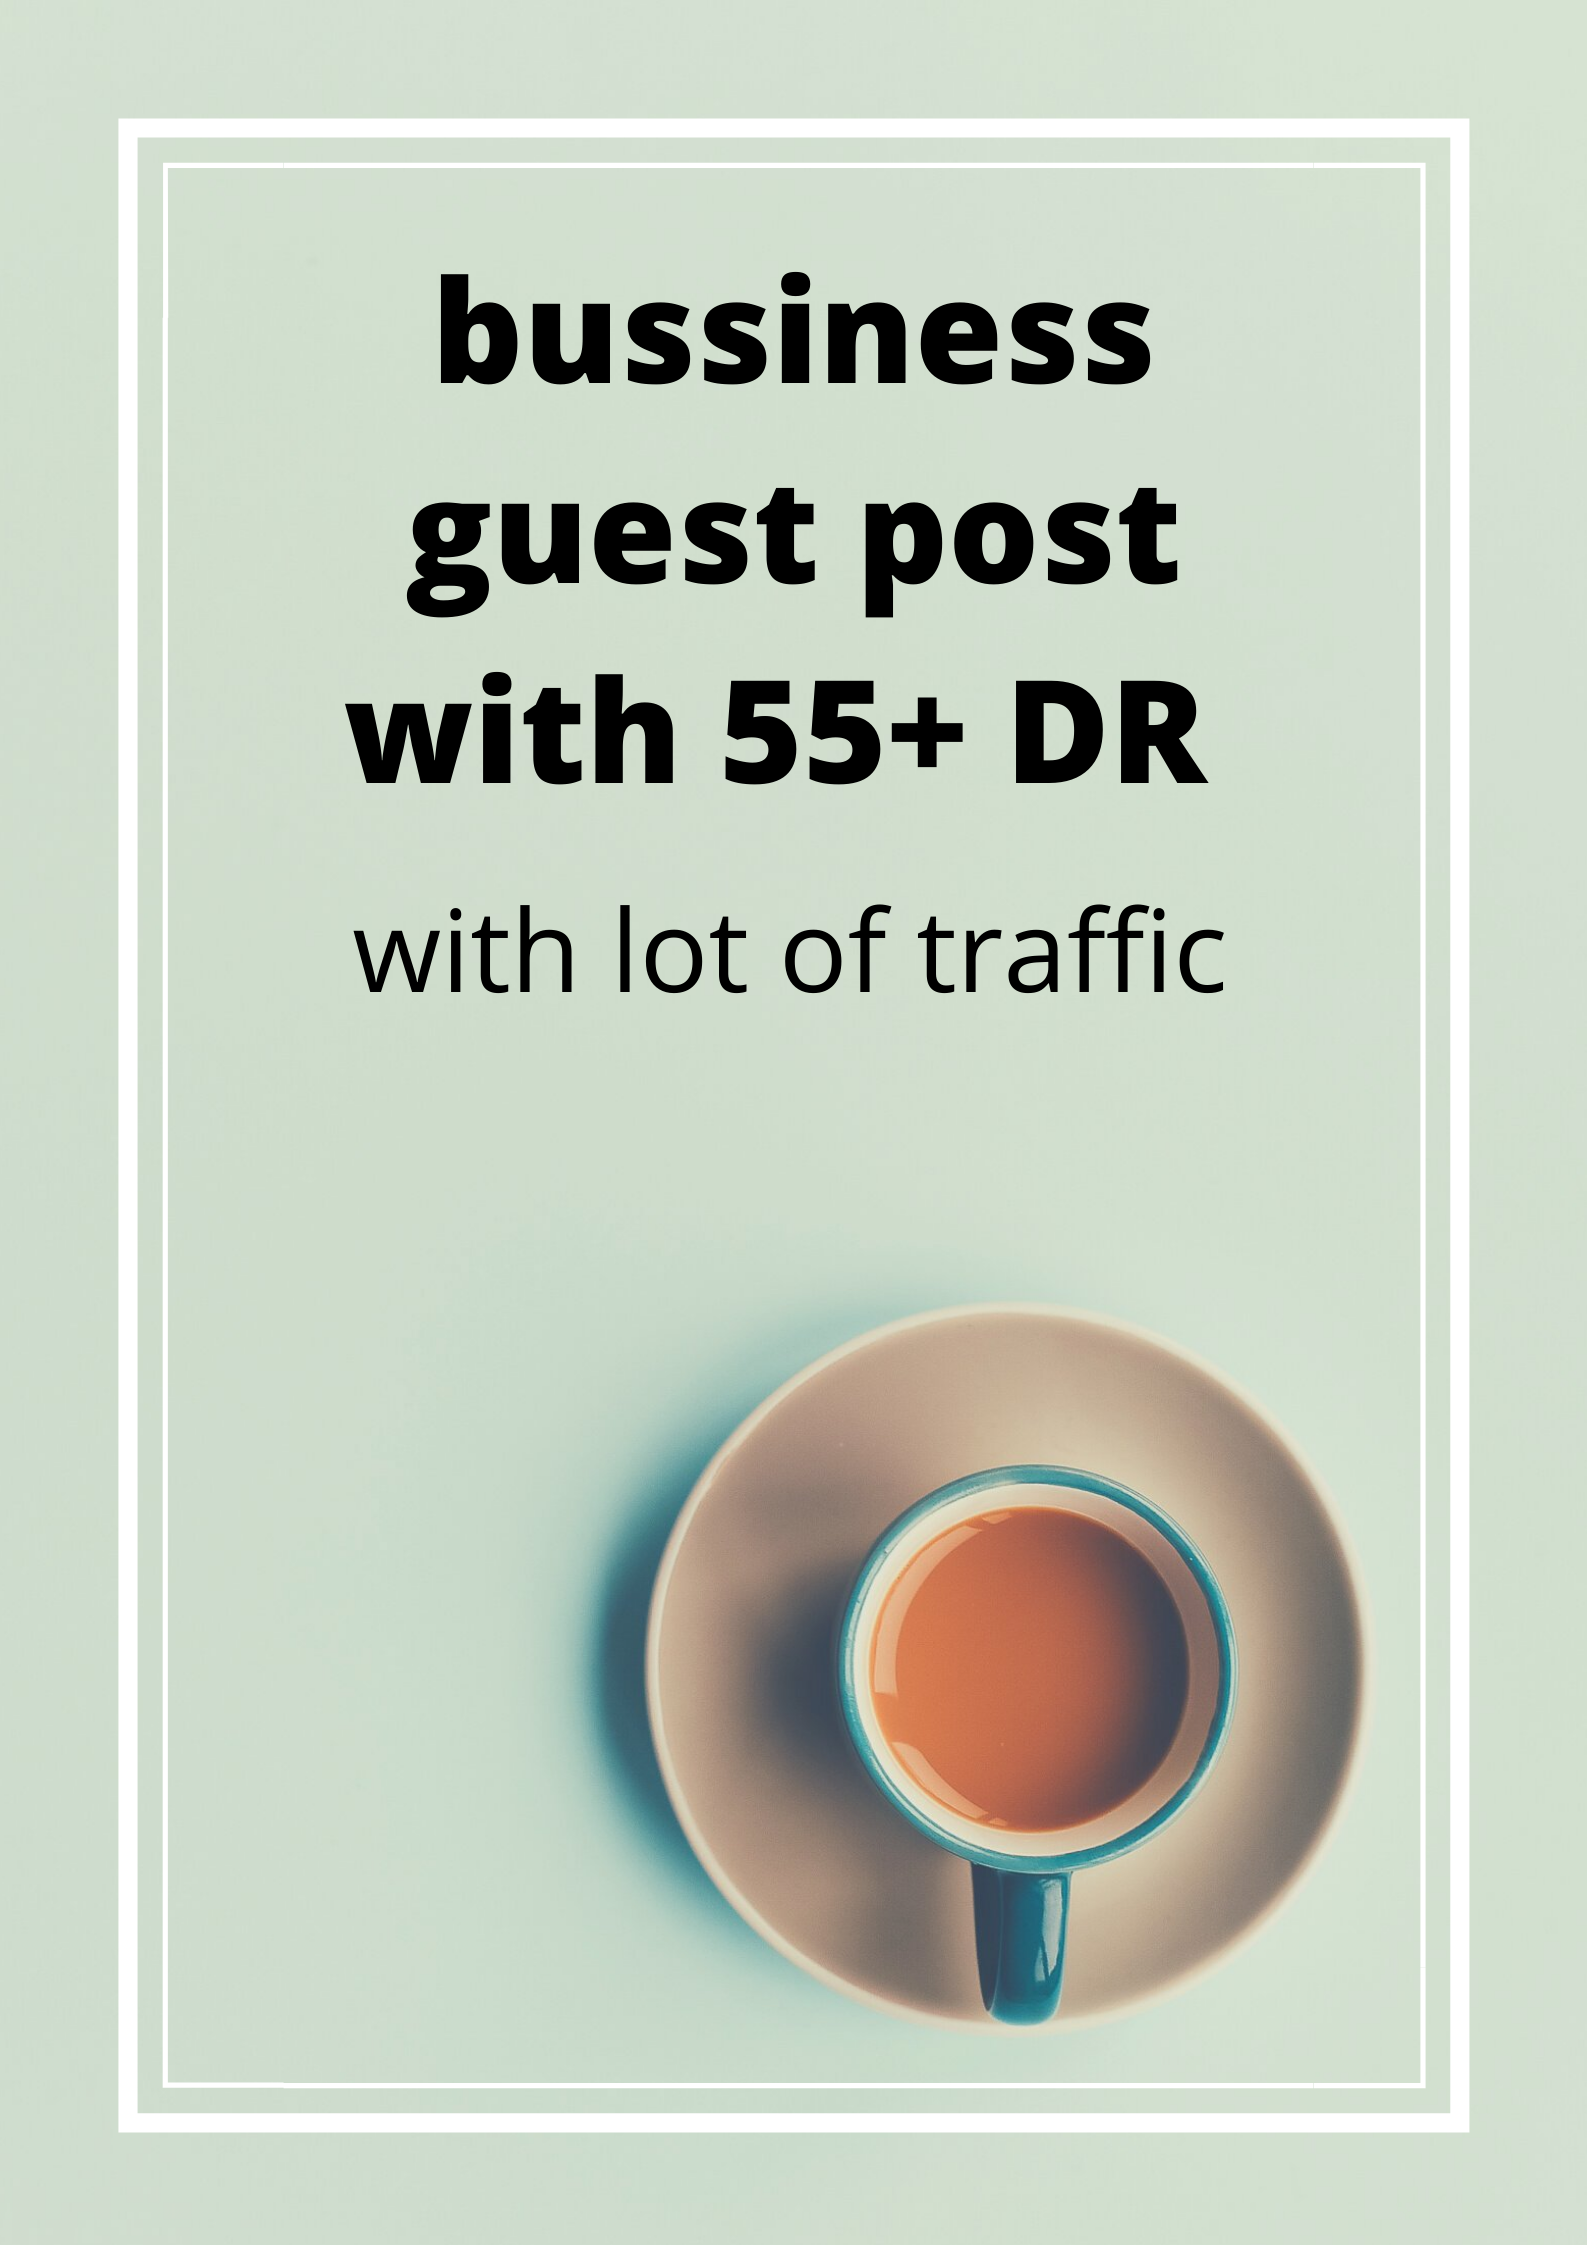 Guest post with DR or DA for business